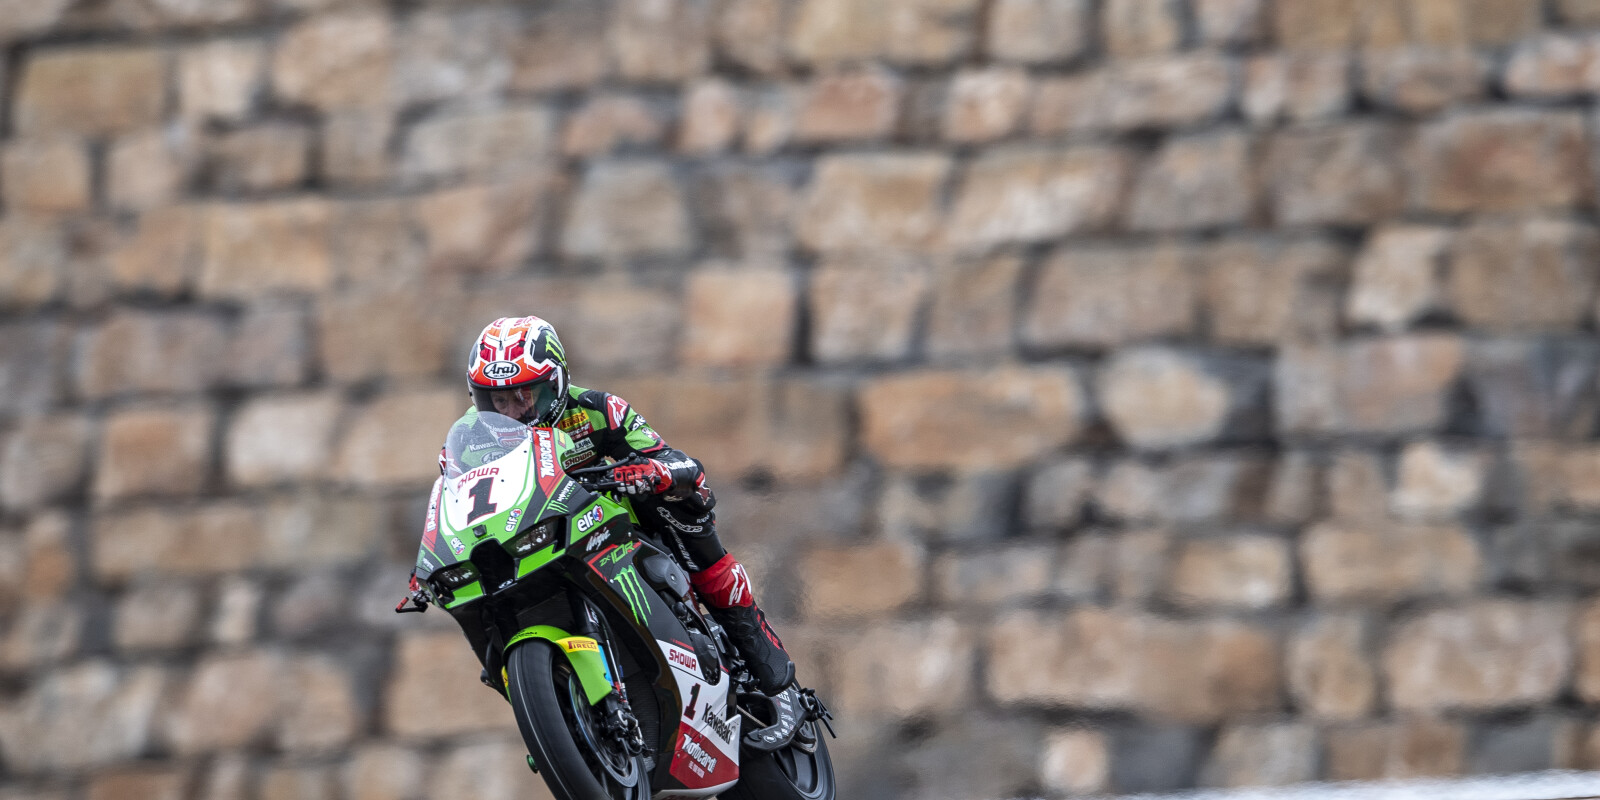 Day 2 of round 1 of the World Superbikes at Aragon with Kawasaki Racing Team